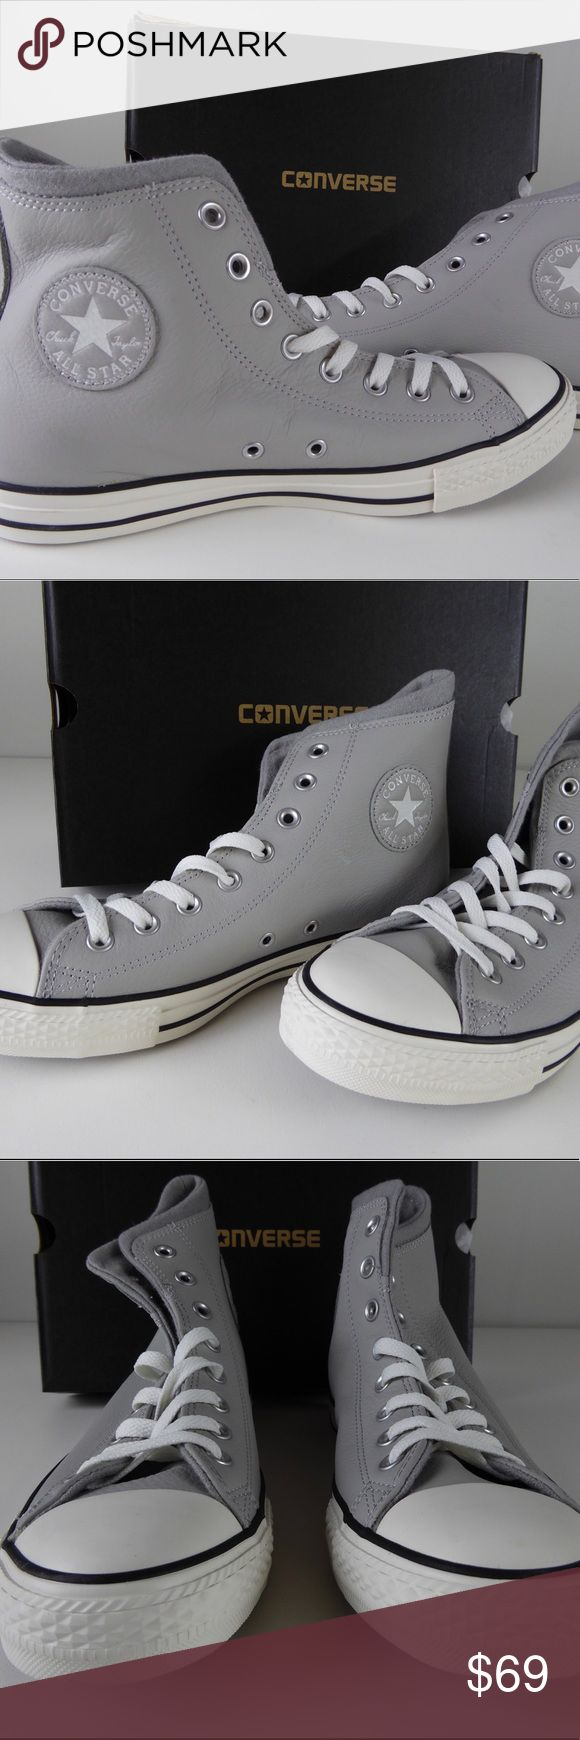 "NIB Converse Chuck Taylor All Stars Leather Shoes Brand new Chuck Taylor All Stars. Classic hi-top style in ""ash gray/egret"" . Leather upper, rubber cap toe, lace up front with wool lining and cushioned footbed. Brand new in box so price firm. Let us know if you have any questions. Converse Shoes Sneakers"